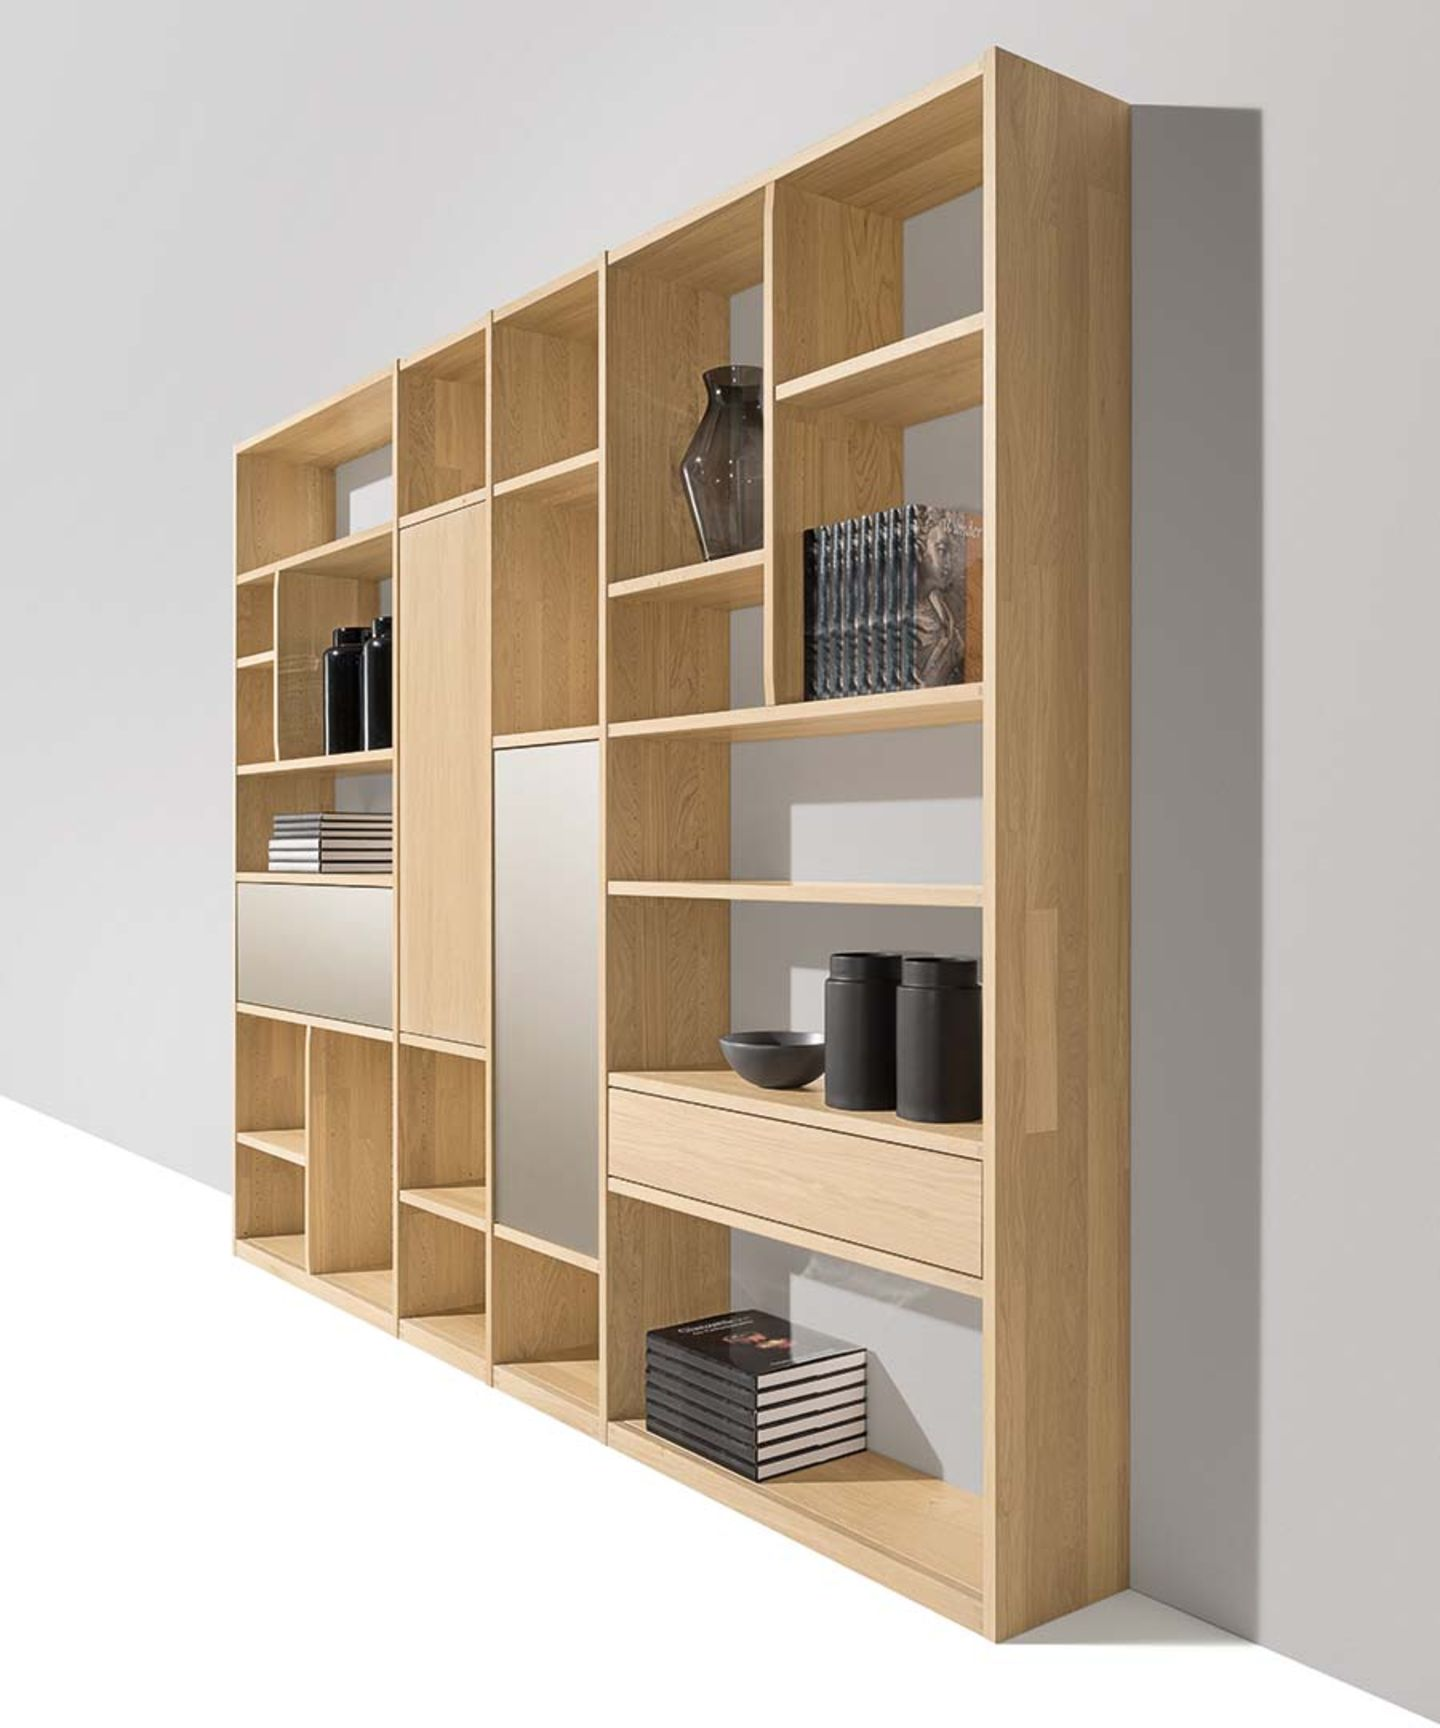 cubus shelf made of solid wood with glass